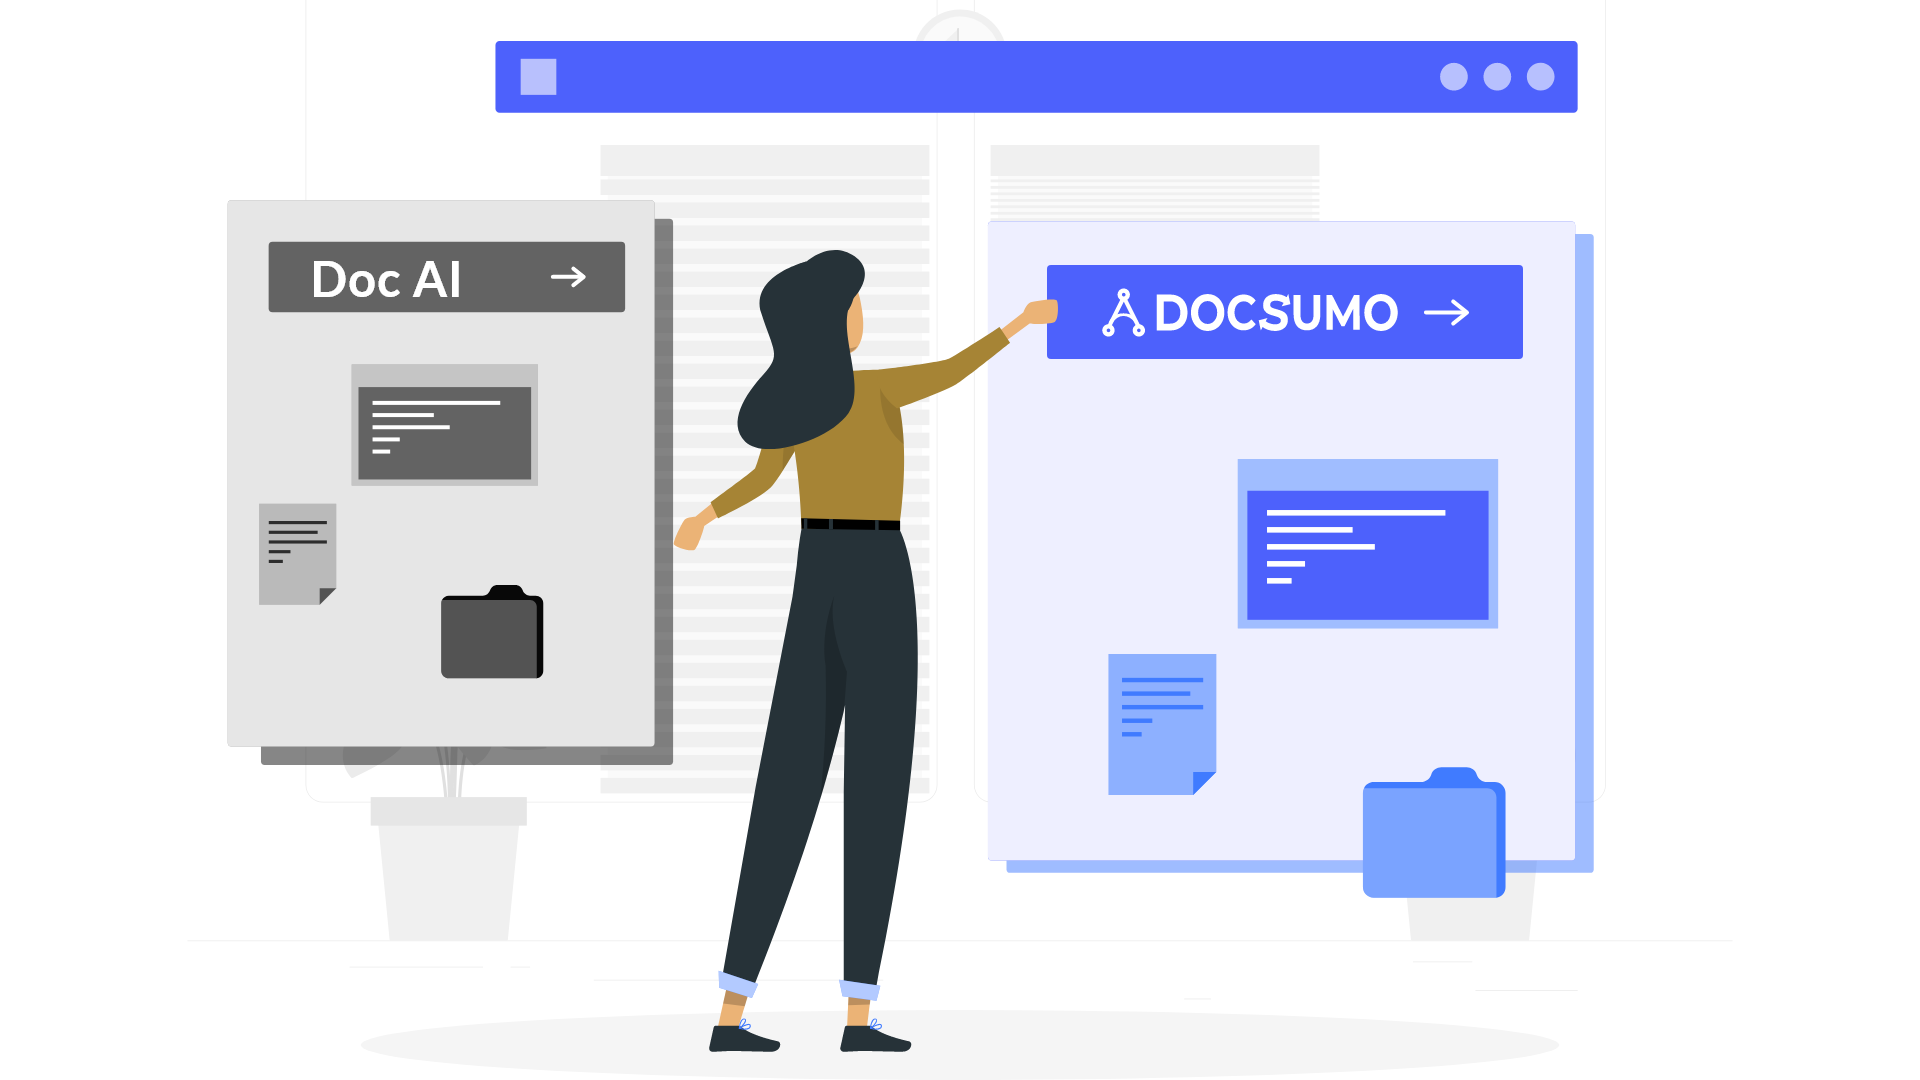 What makes Docsumo a fitting alternative to Doc AI by Google?